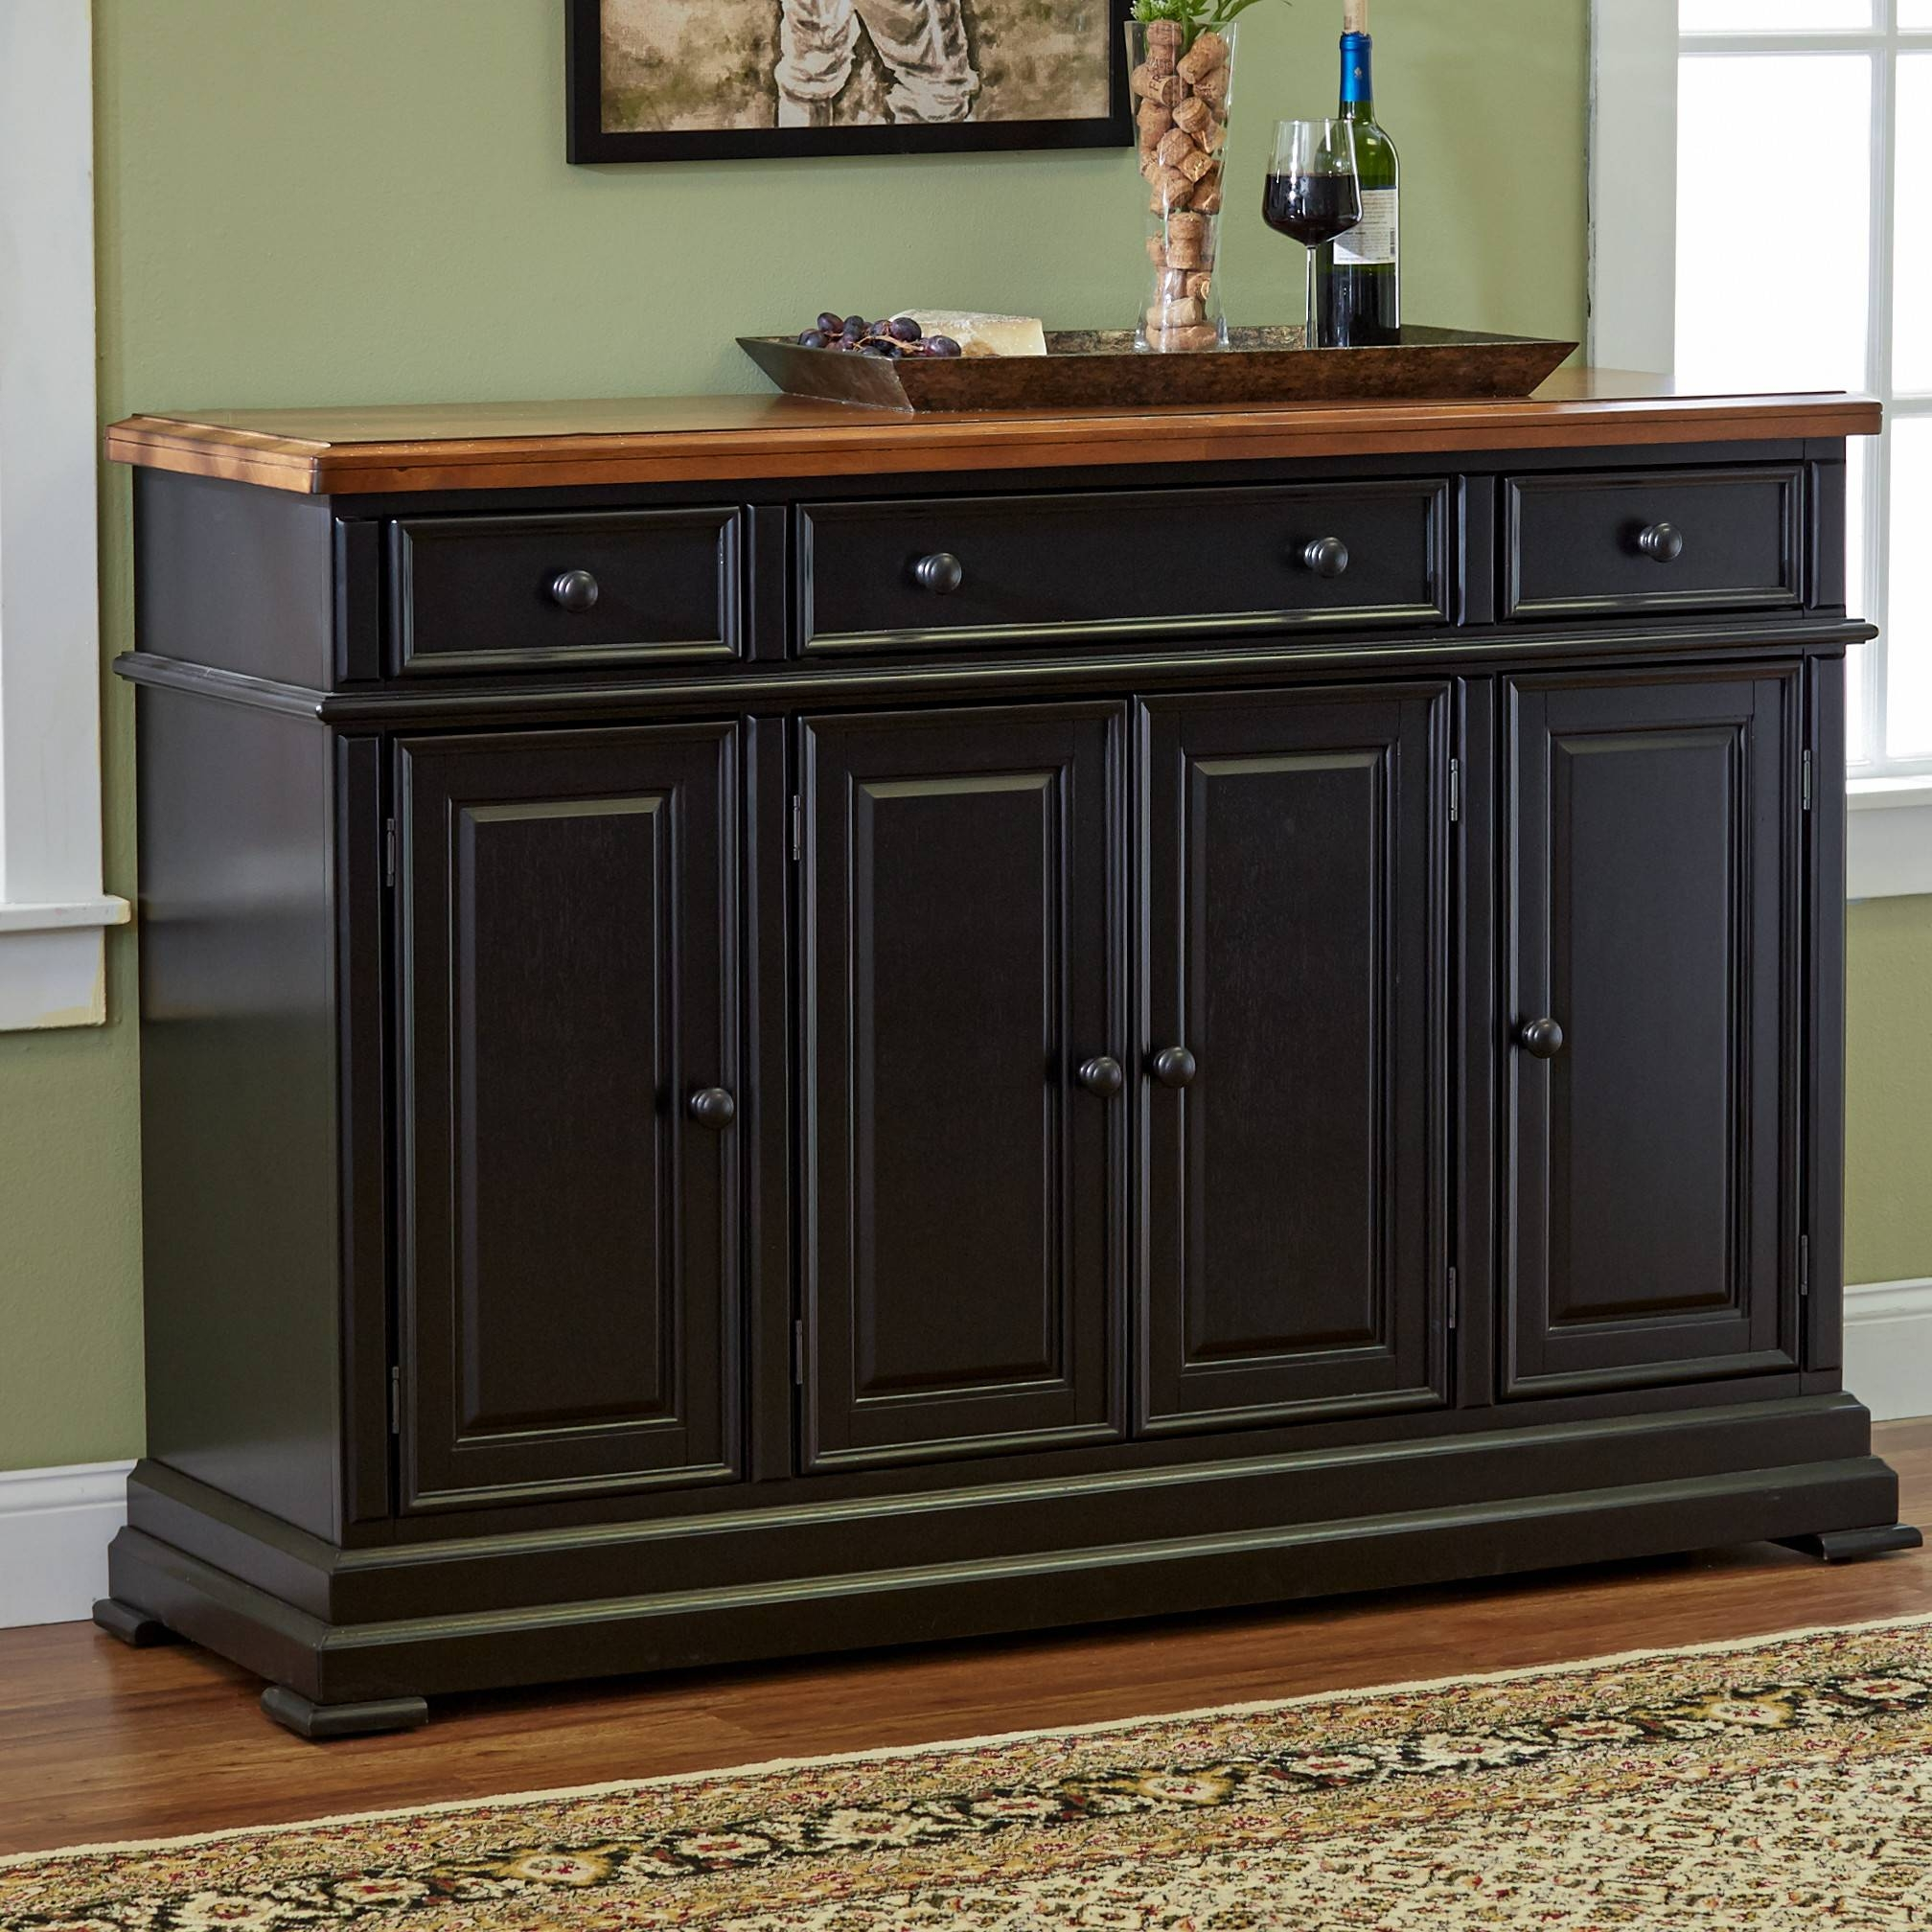 Dining Room Buffet Cabinet Sideboards Buffets Storage Servers 17 for Dining Sideboards (Image 5 of 15)